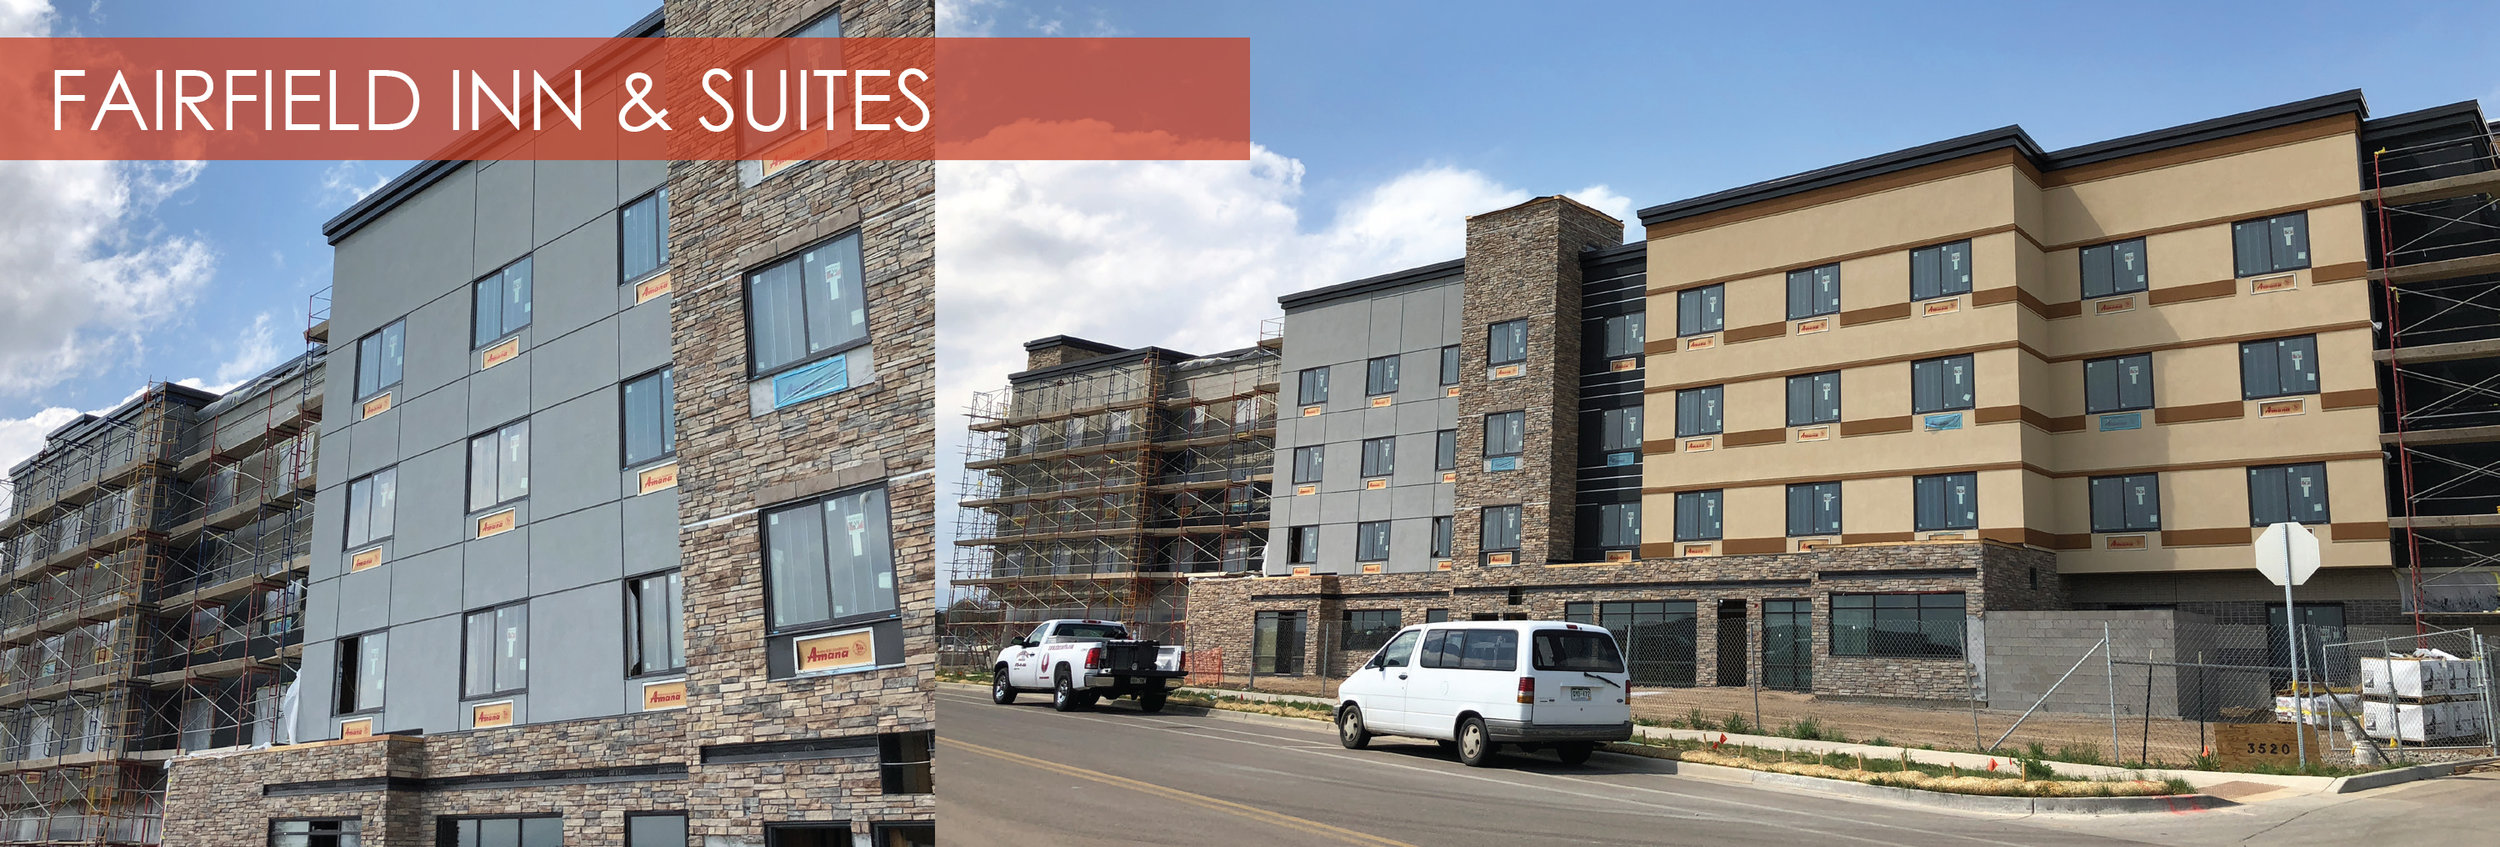 Fairfield Inn and Suites, Fort Collins, Colorado  The Fairfield Inn and Suites in Fort Collins is currently underway. As of April, interiors are being outfitted and exterior palettes are being finalized on the building. The project is slated to open for its first reservation holders in August 2018.